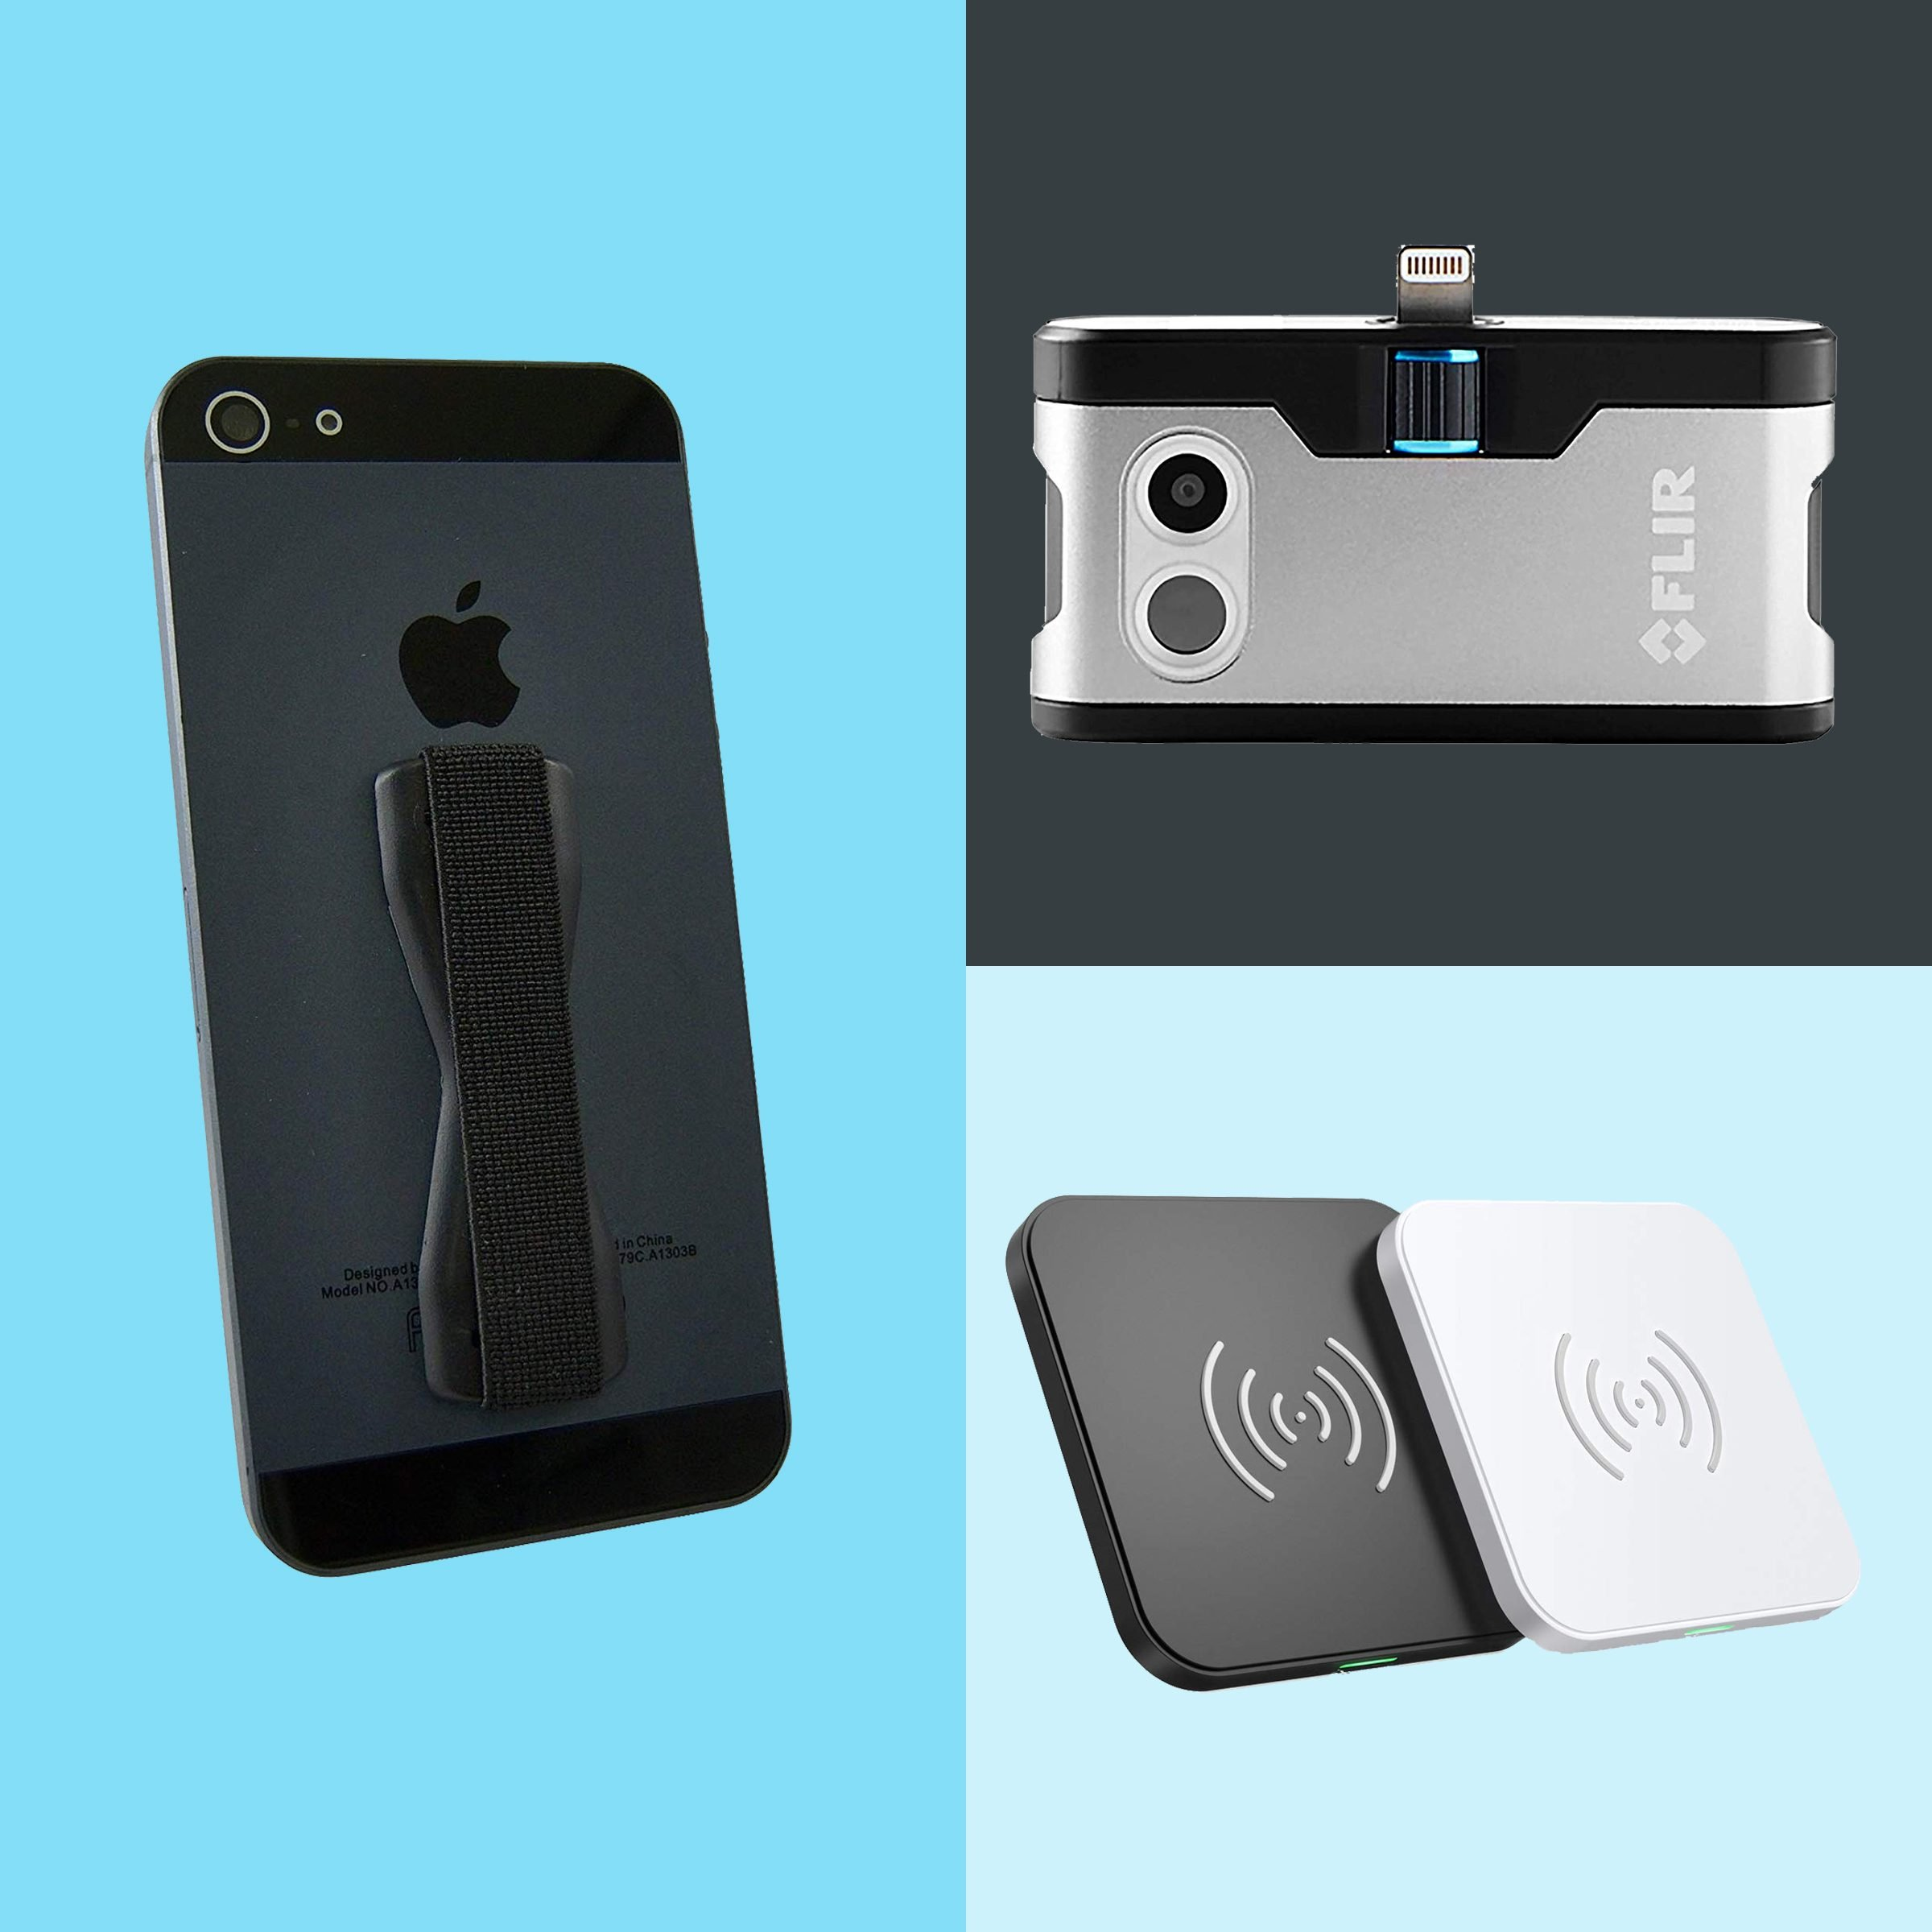 15 Cell Phone Accessories You'll End Up Using Every Day